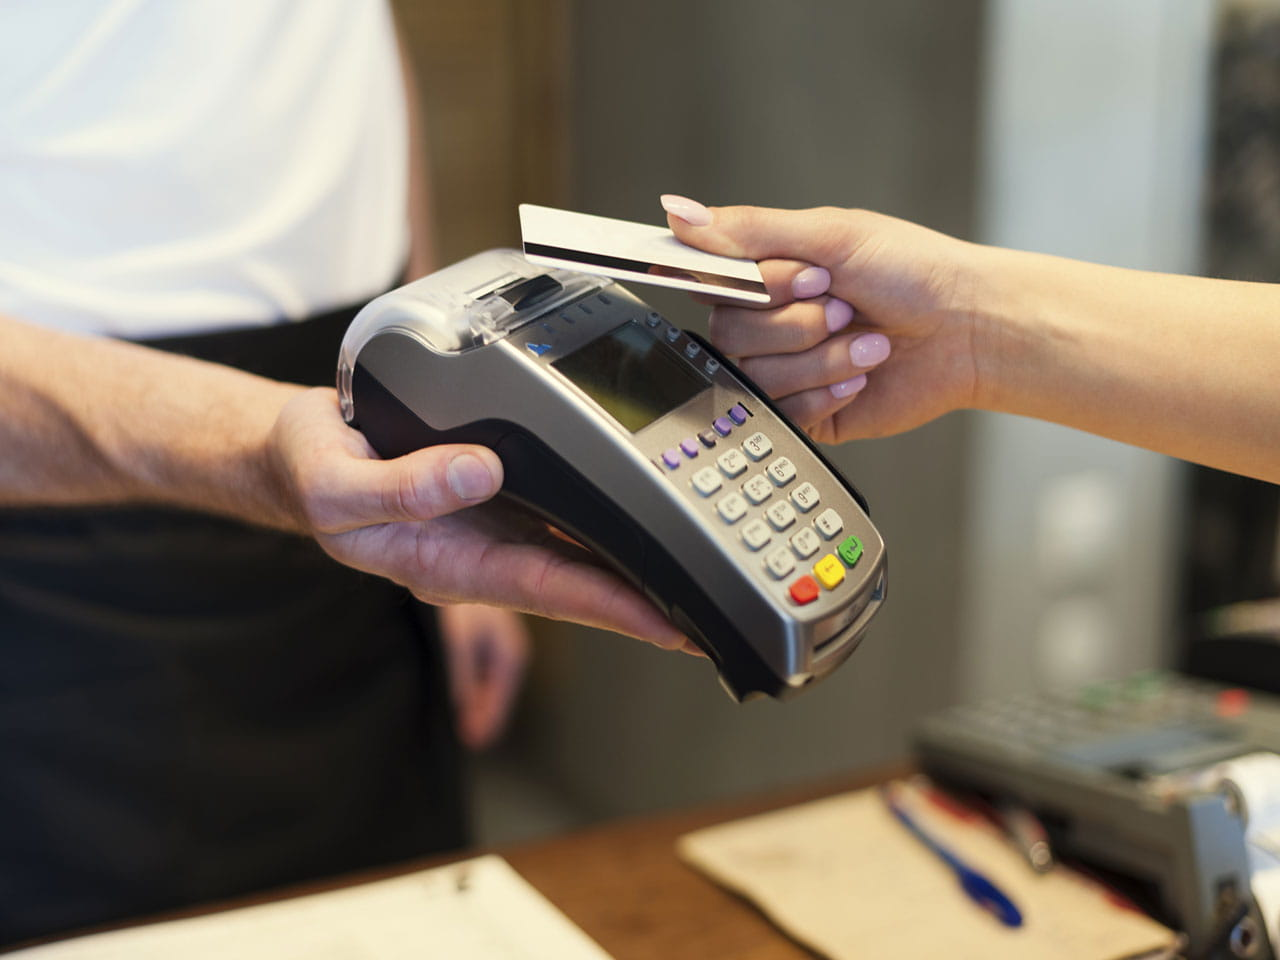 A transaction using a credit card machine